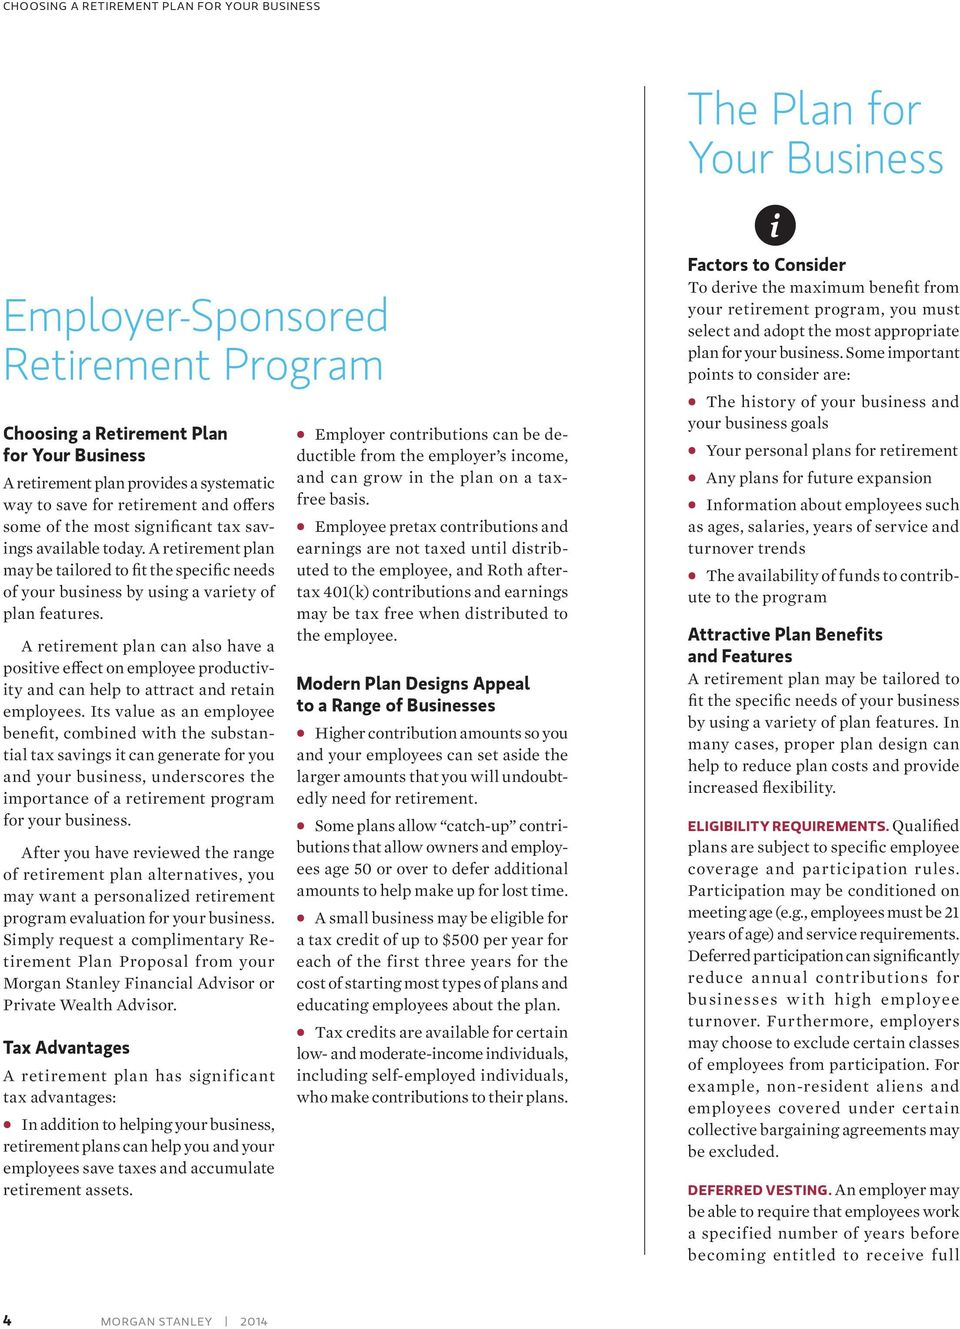 A retirement plan can also have a positive effect on employee productivity and can help to attract and retain employees.